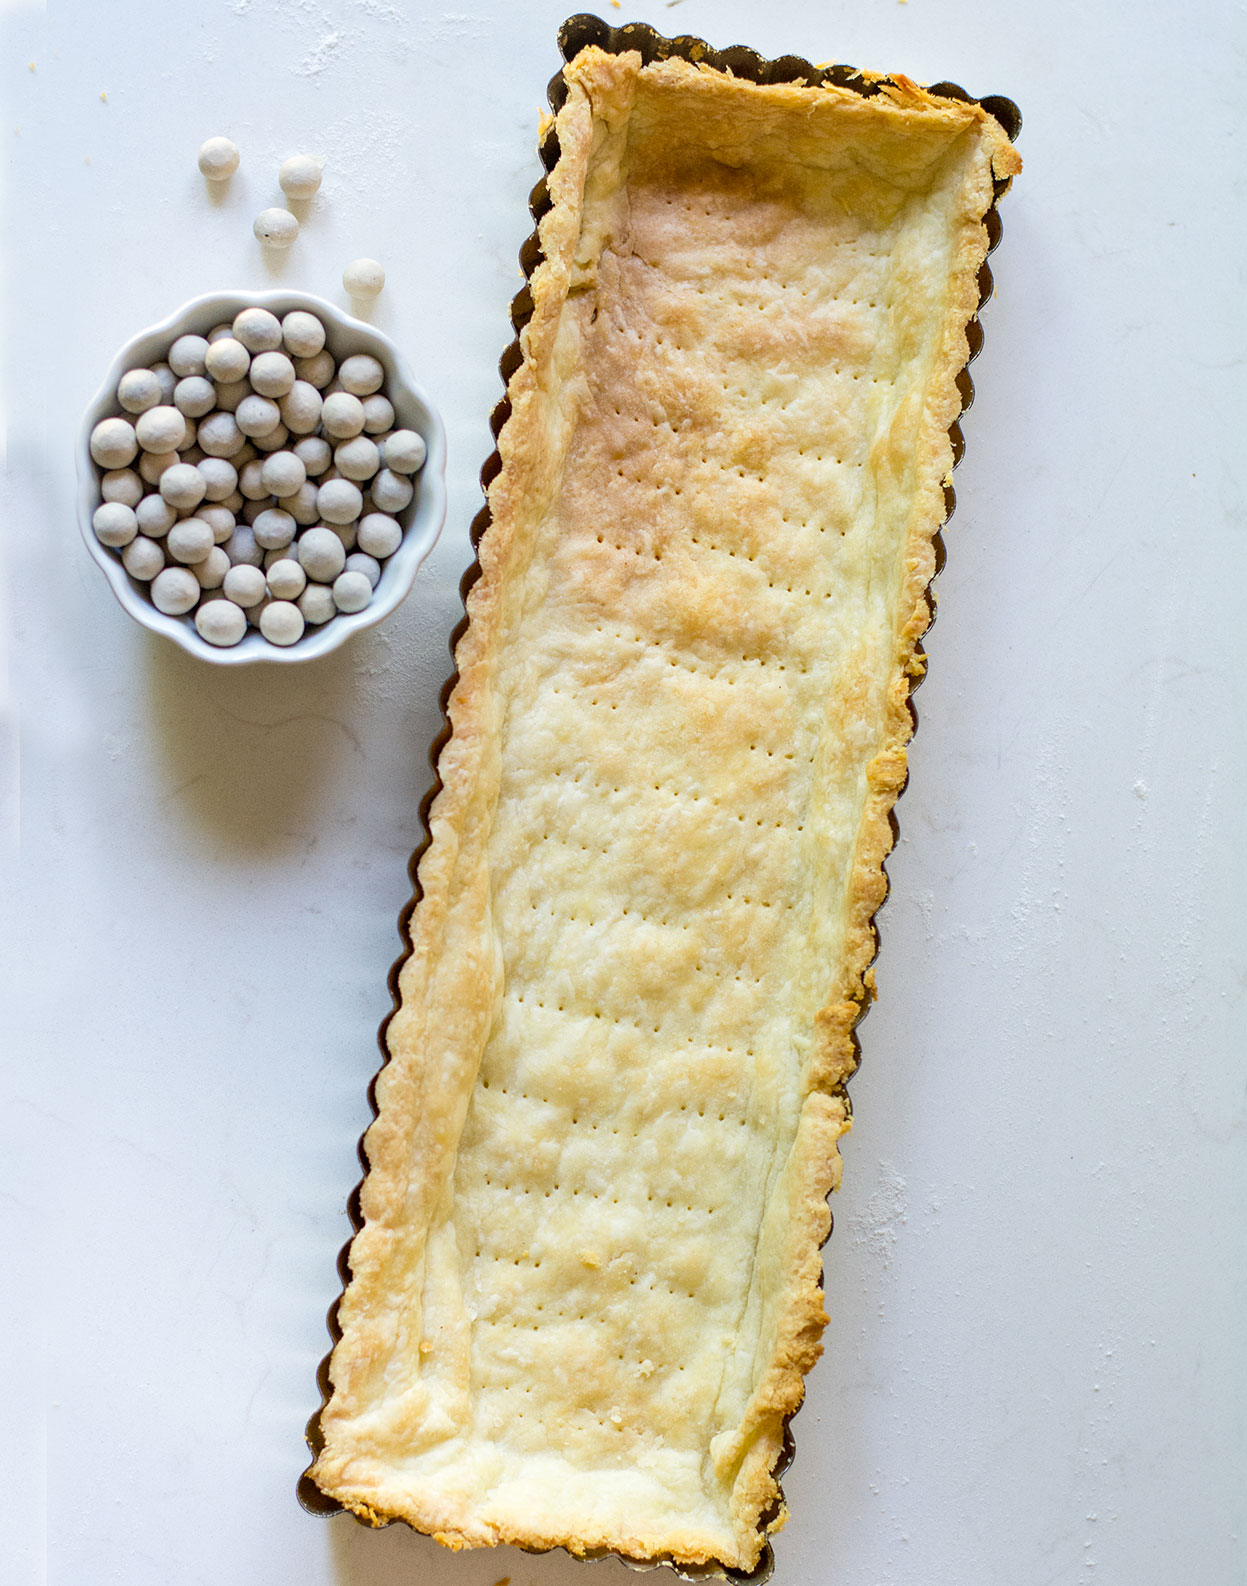 baked tart shell with pie weights